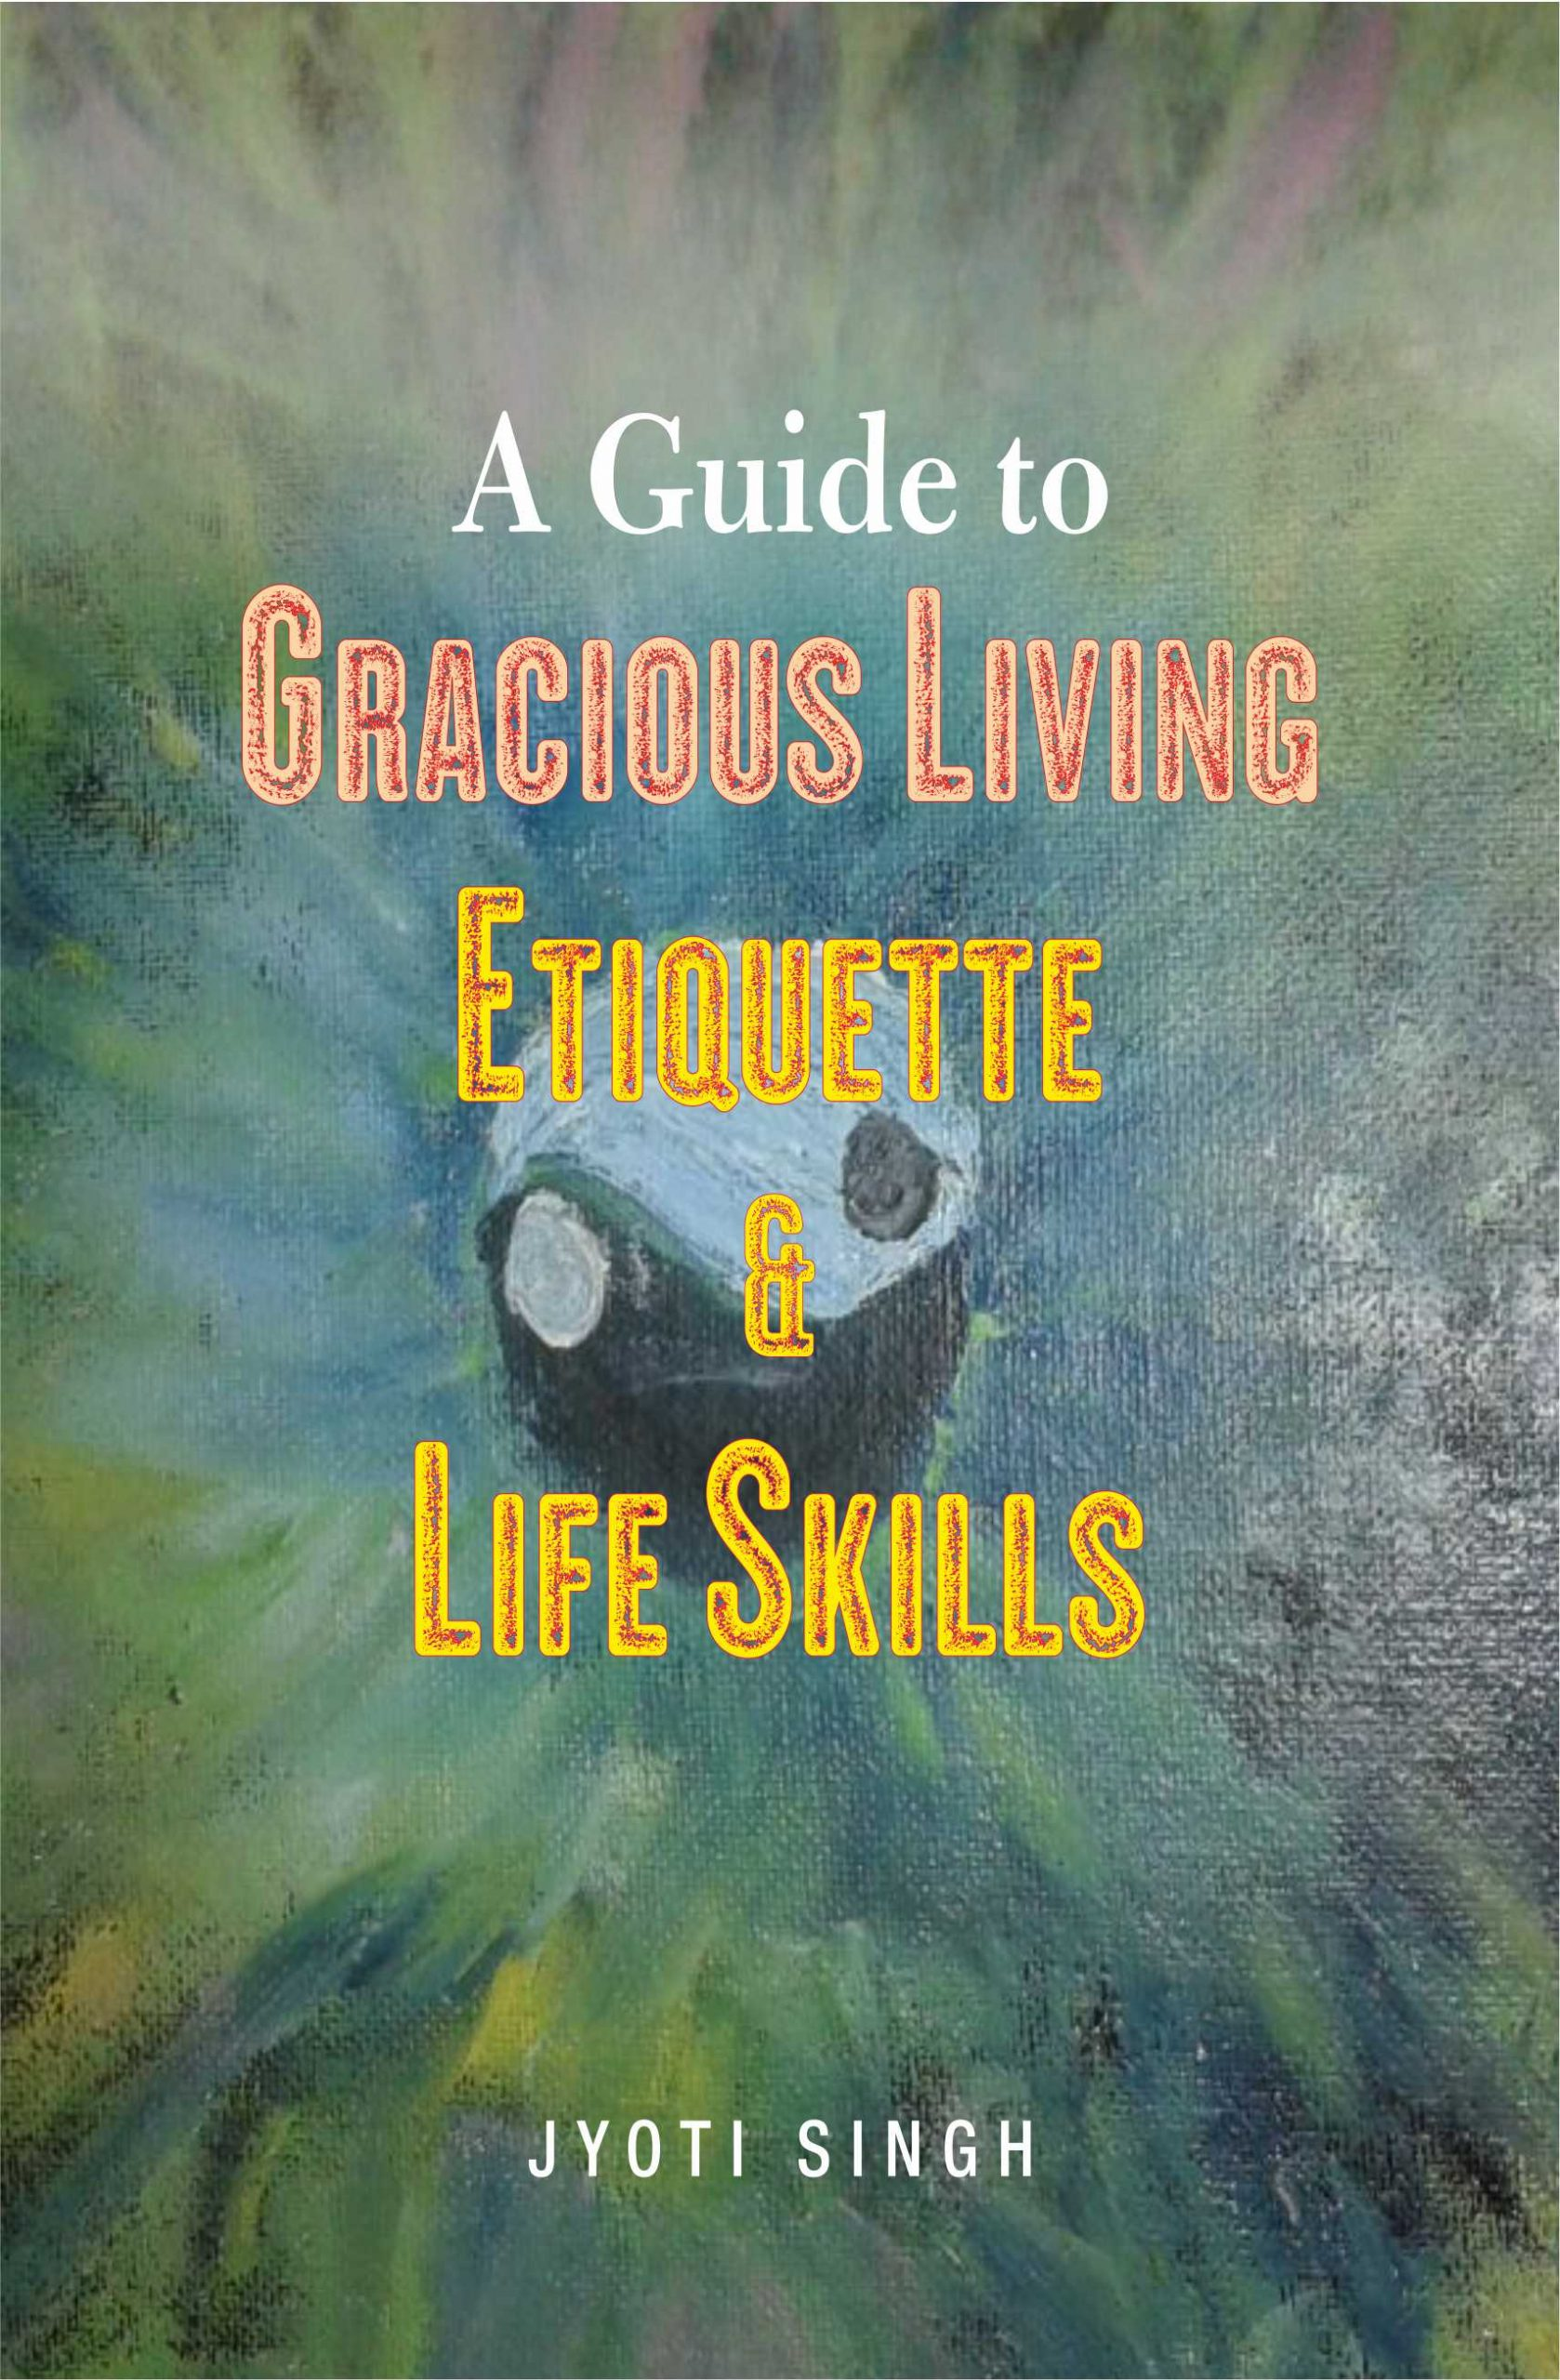 A Guide to Gracious Living Etiquette and life skills by Jyoti Singh